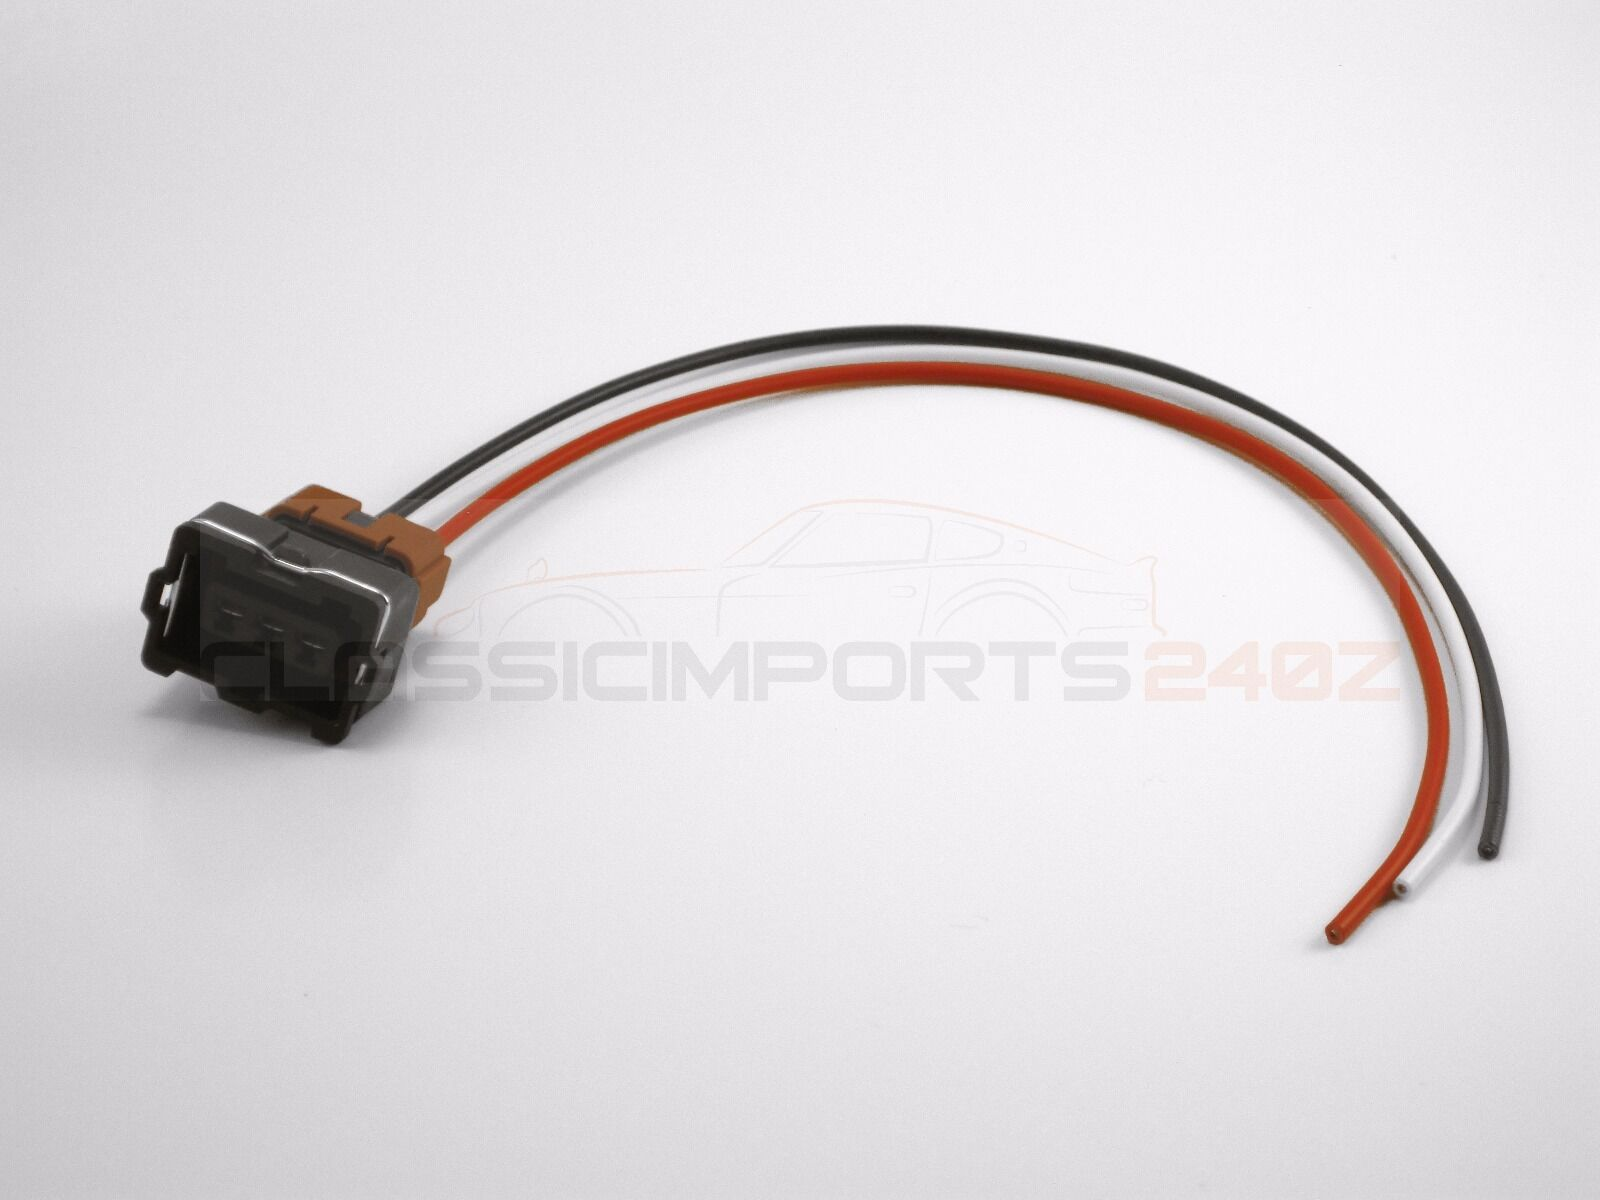 throttle position sensor tps wiring harness connector plug for throttle position sensor tps wiring harness connector plug for 280z 280zx 300zx